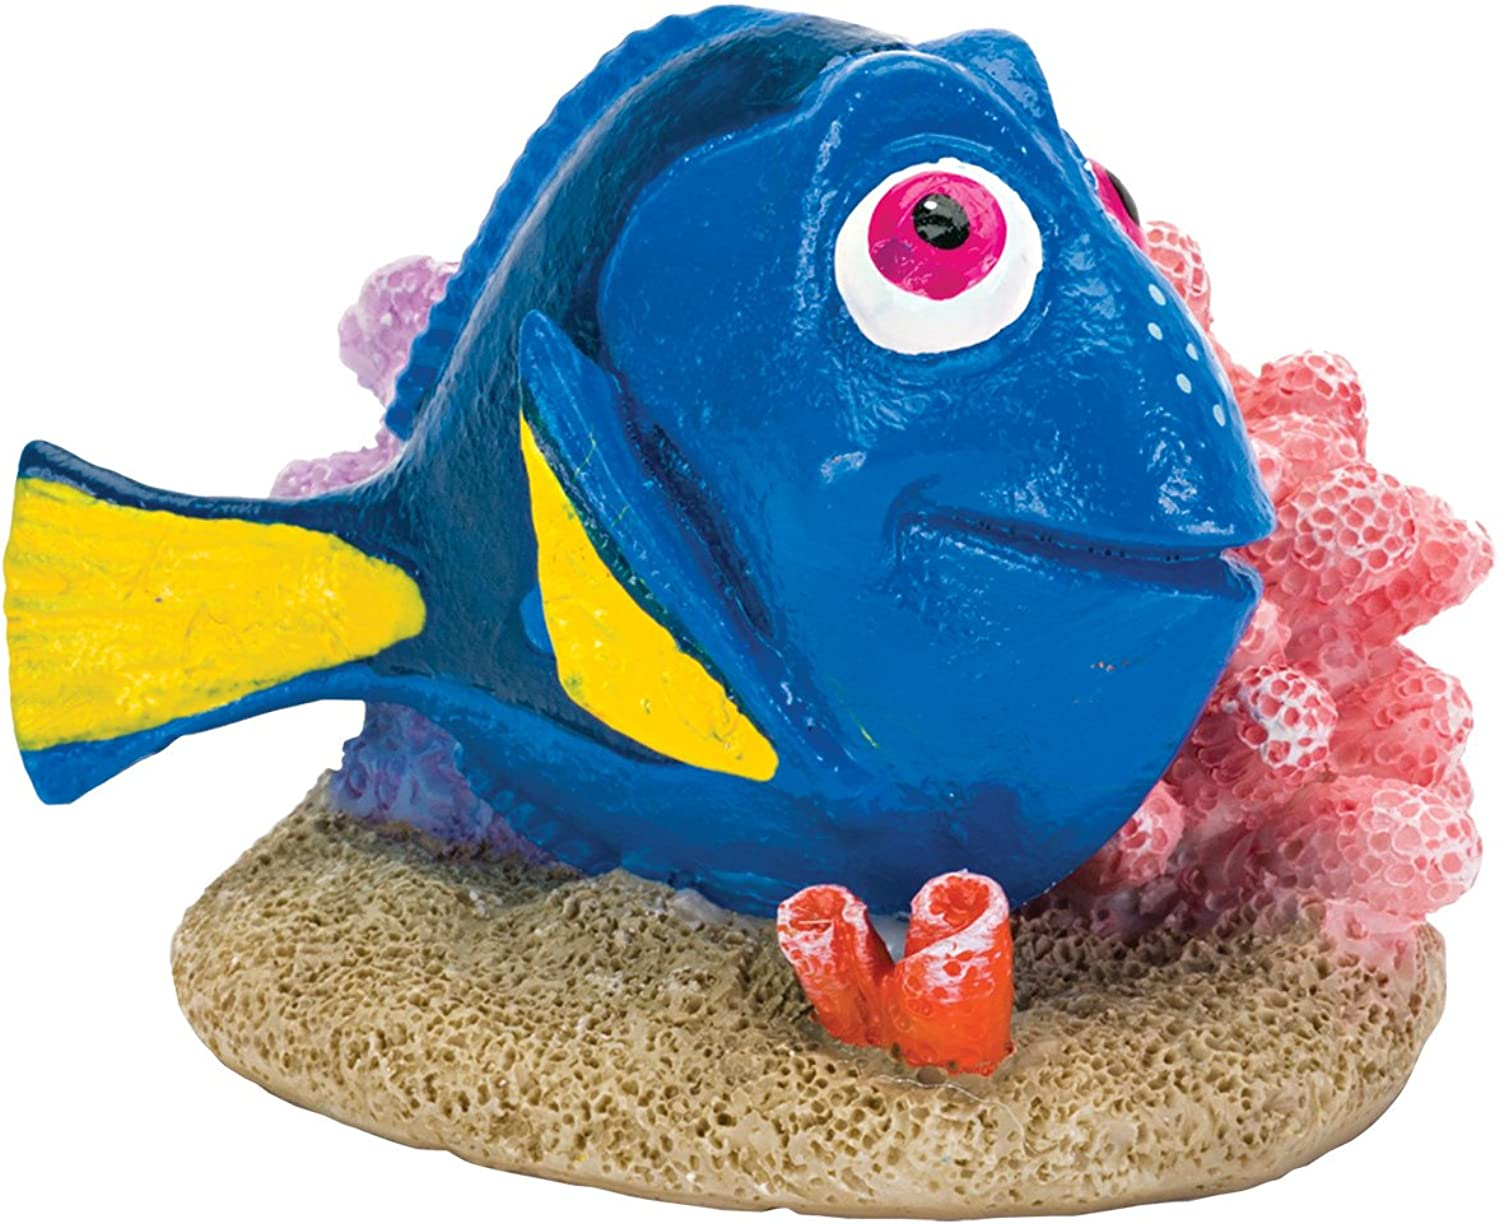 Penn Plax 64674 Finding Dory with Coral, Mini